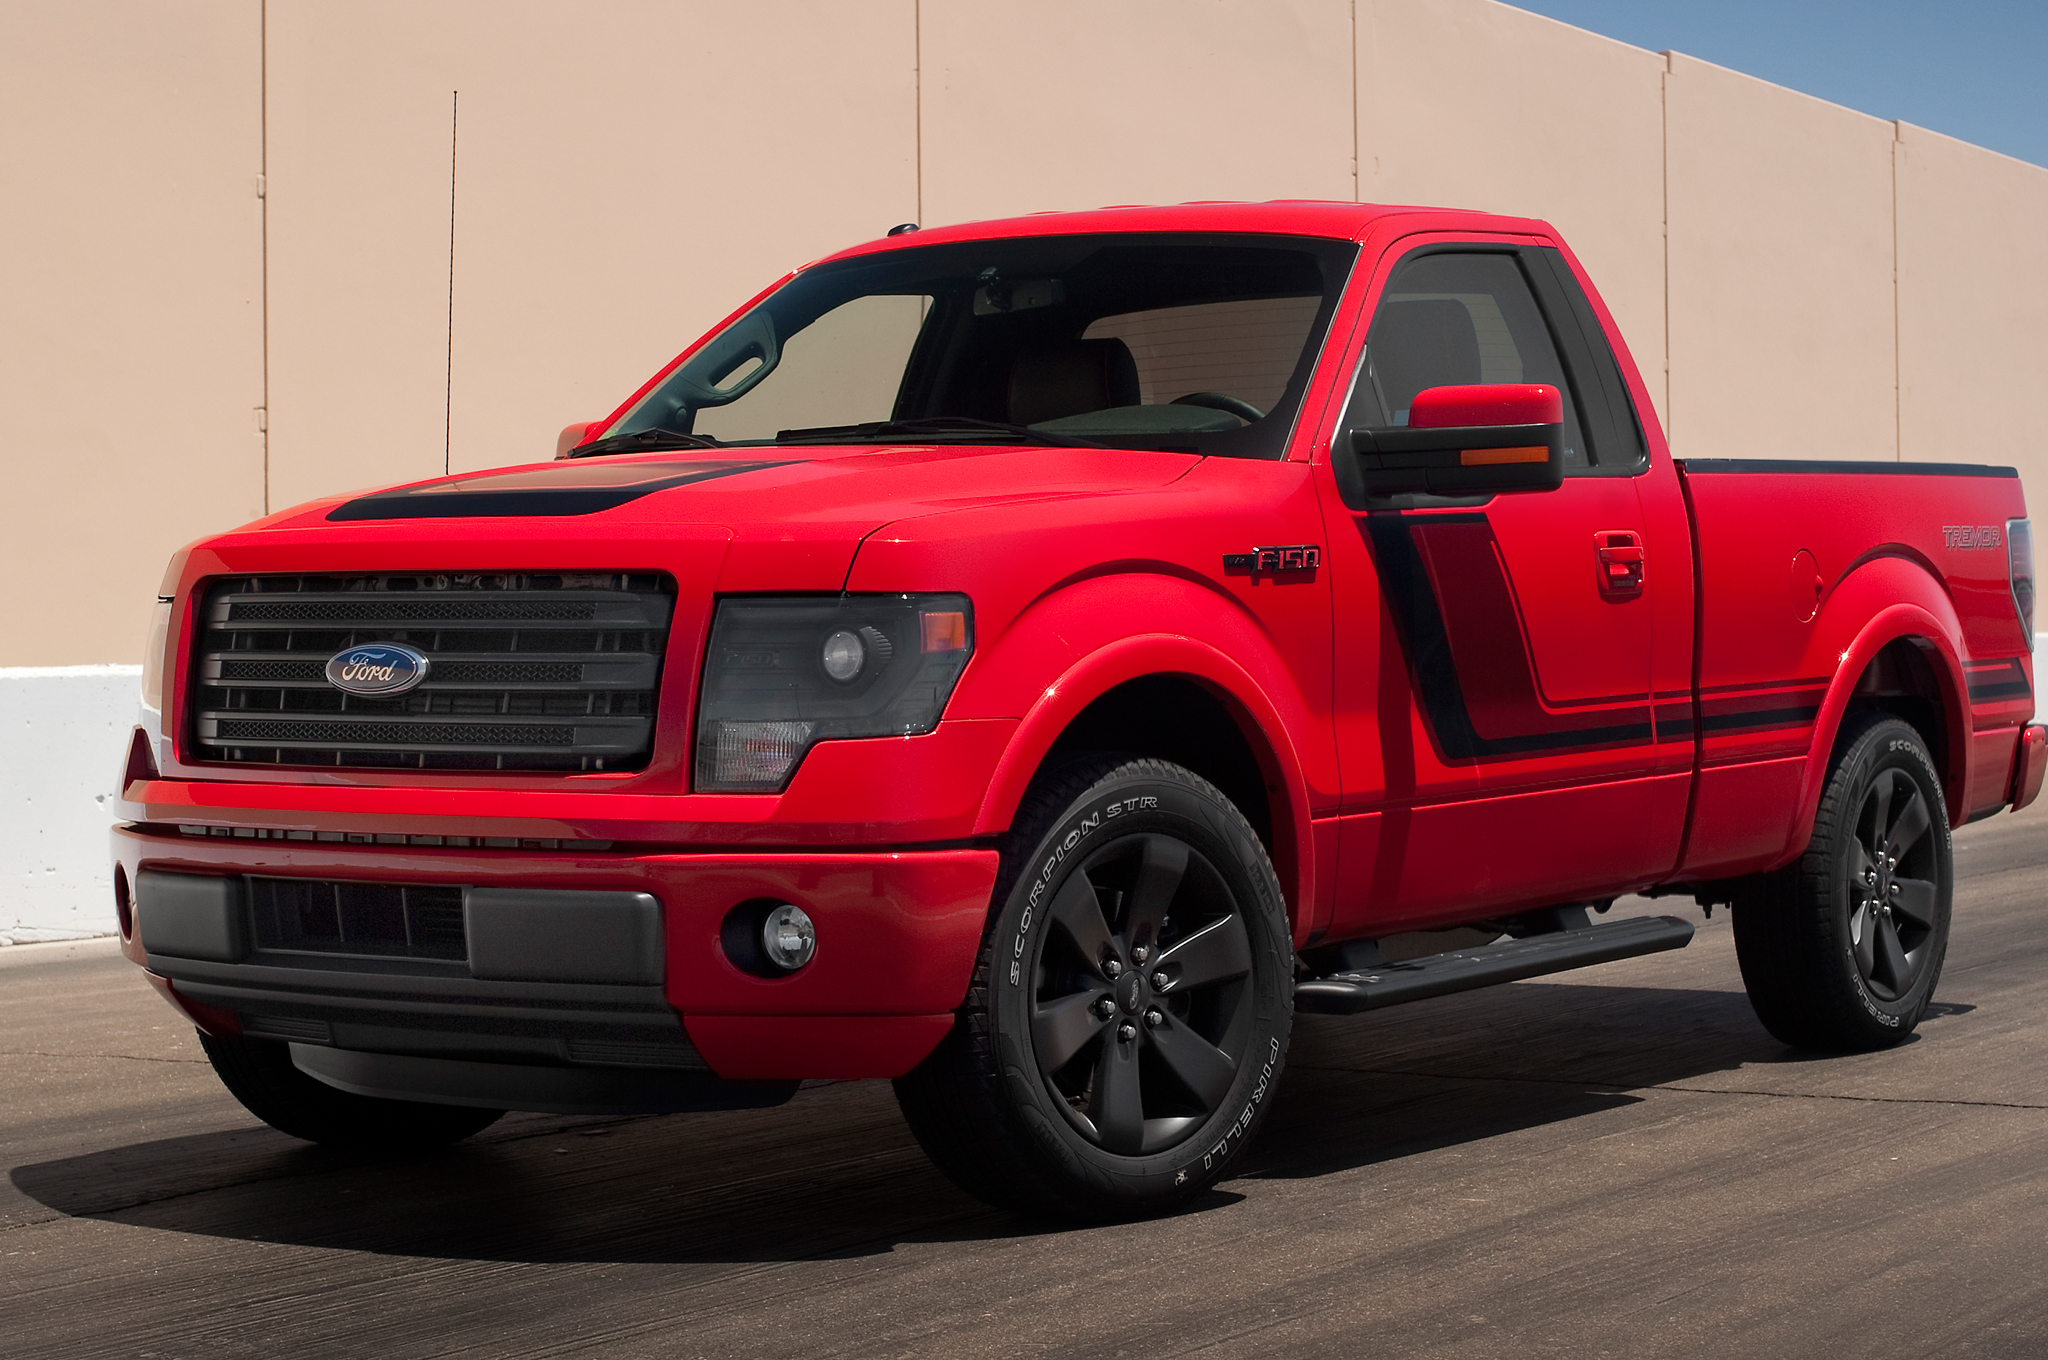 2014 Ford F-150 Tremor Backgrounds, Compatible - PC, Mobile, Gadgets  2048x1360 px